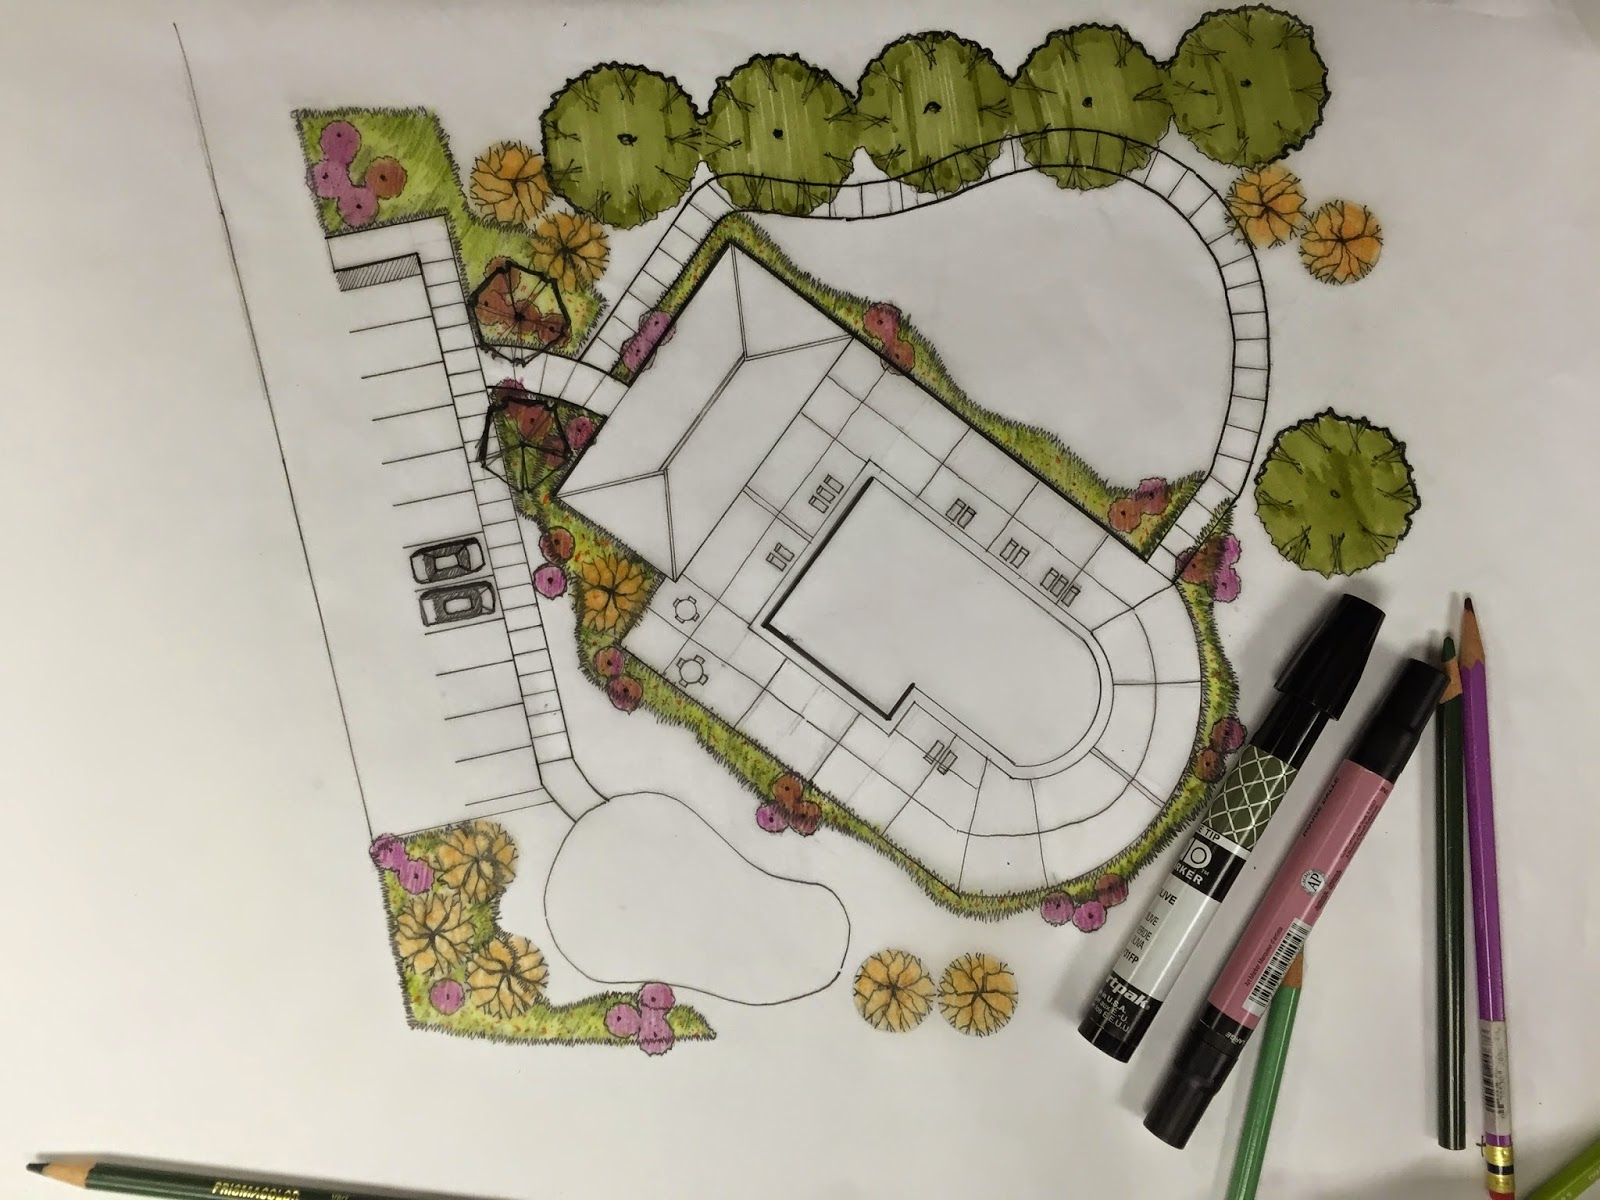 Jacky Wah LJA Engineering Houston Office Second Week – How To Draw A Site Plan By Hand